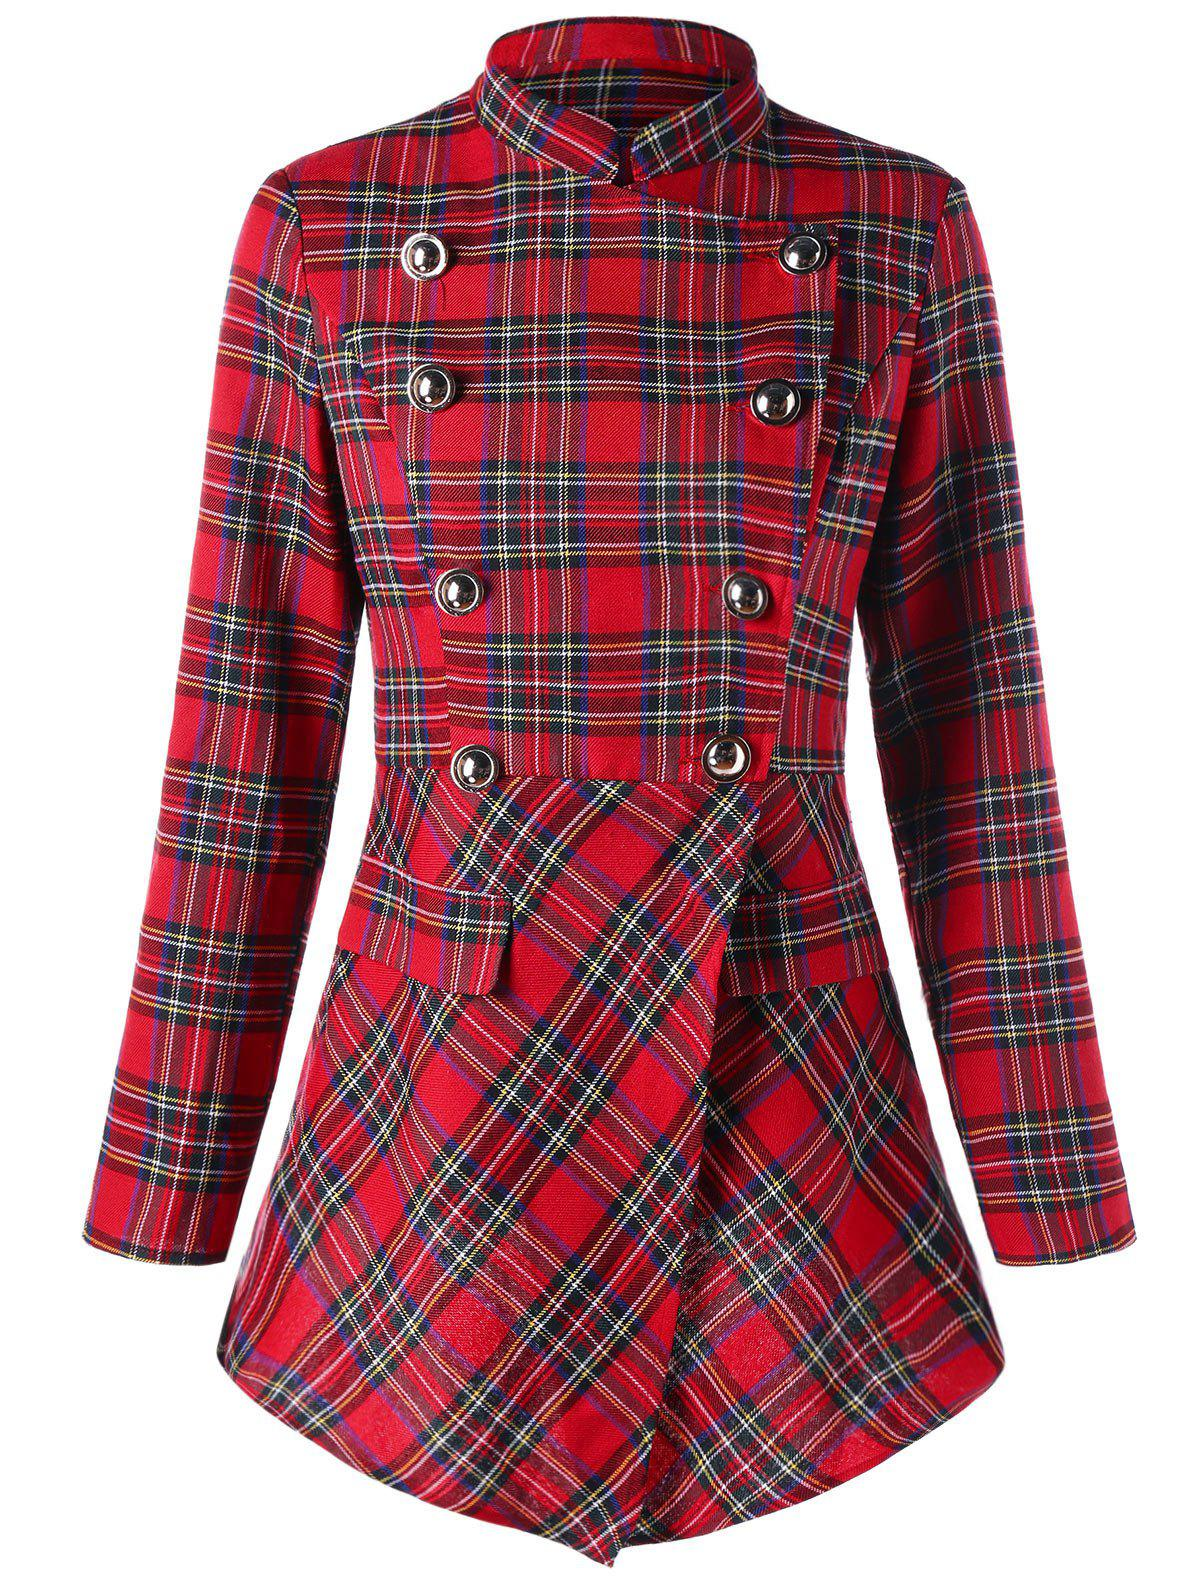 Ugly Christmas Double Breasted Plaid CoatWOMEN<br><br>Size: M; Color: CHECKED; Clothes Type: Others; Material: Cotton,Cotton Blend; Type: High Waist; Shirt Length: Regular; Sleeve Length: Full; Collar: Stand-Up Collar; Pattern Type: Plaid; Style: Fashion; Season: Fall,Winter; Weight: 0.3600kg; Package Contents: 1 x Coat;